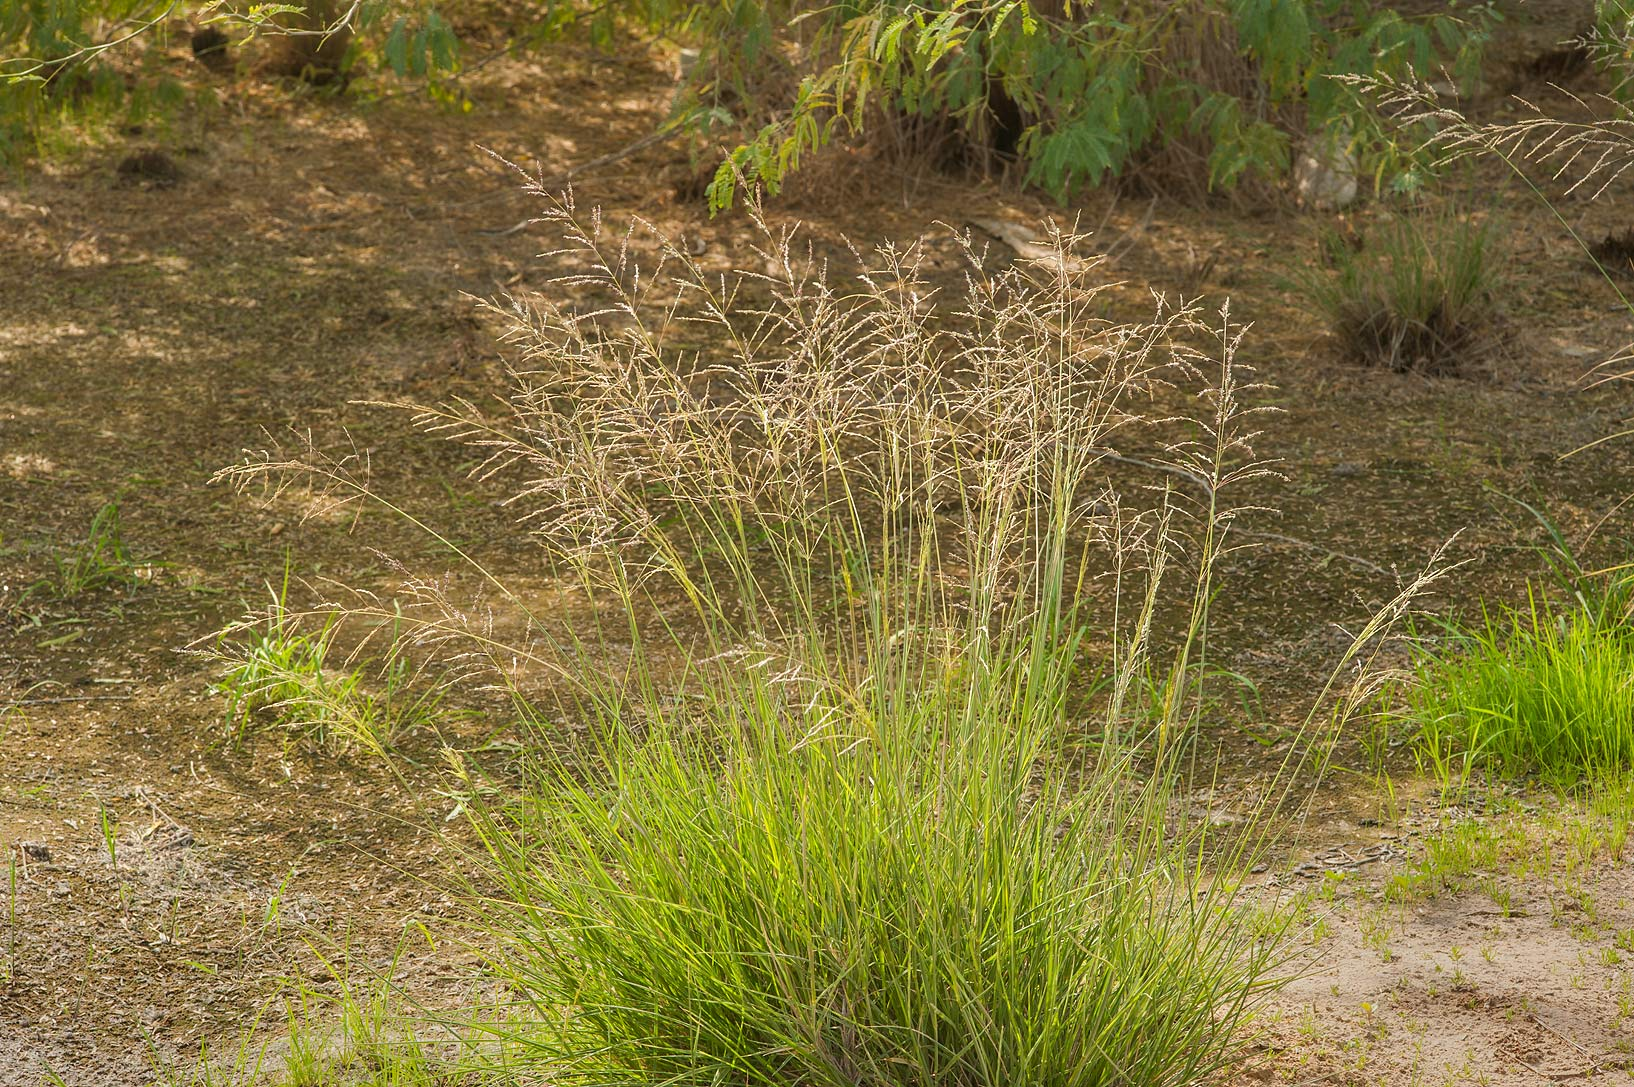 Tussock of grass pan dropseed (Sporobolus...water treatment plant. Al Khor, Qatar